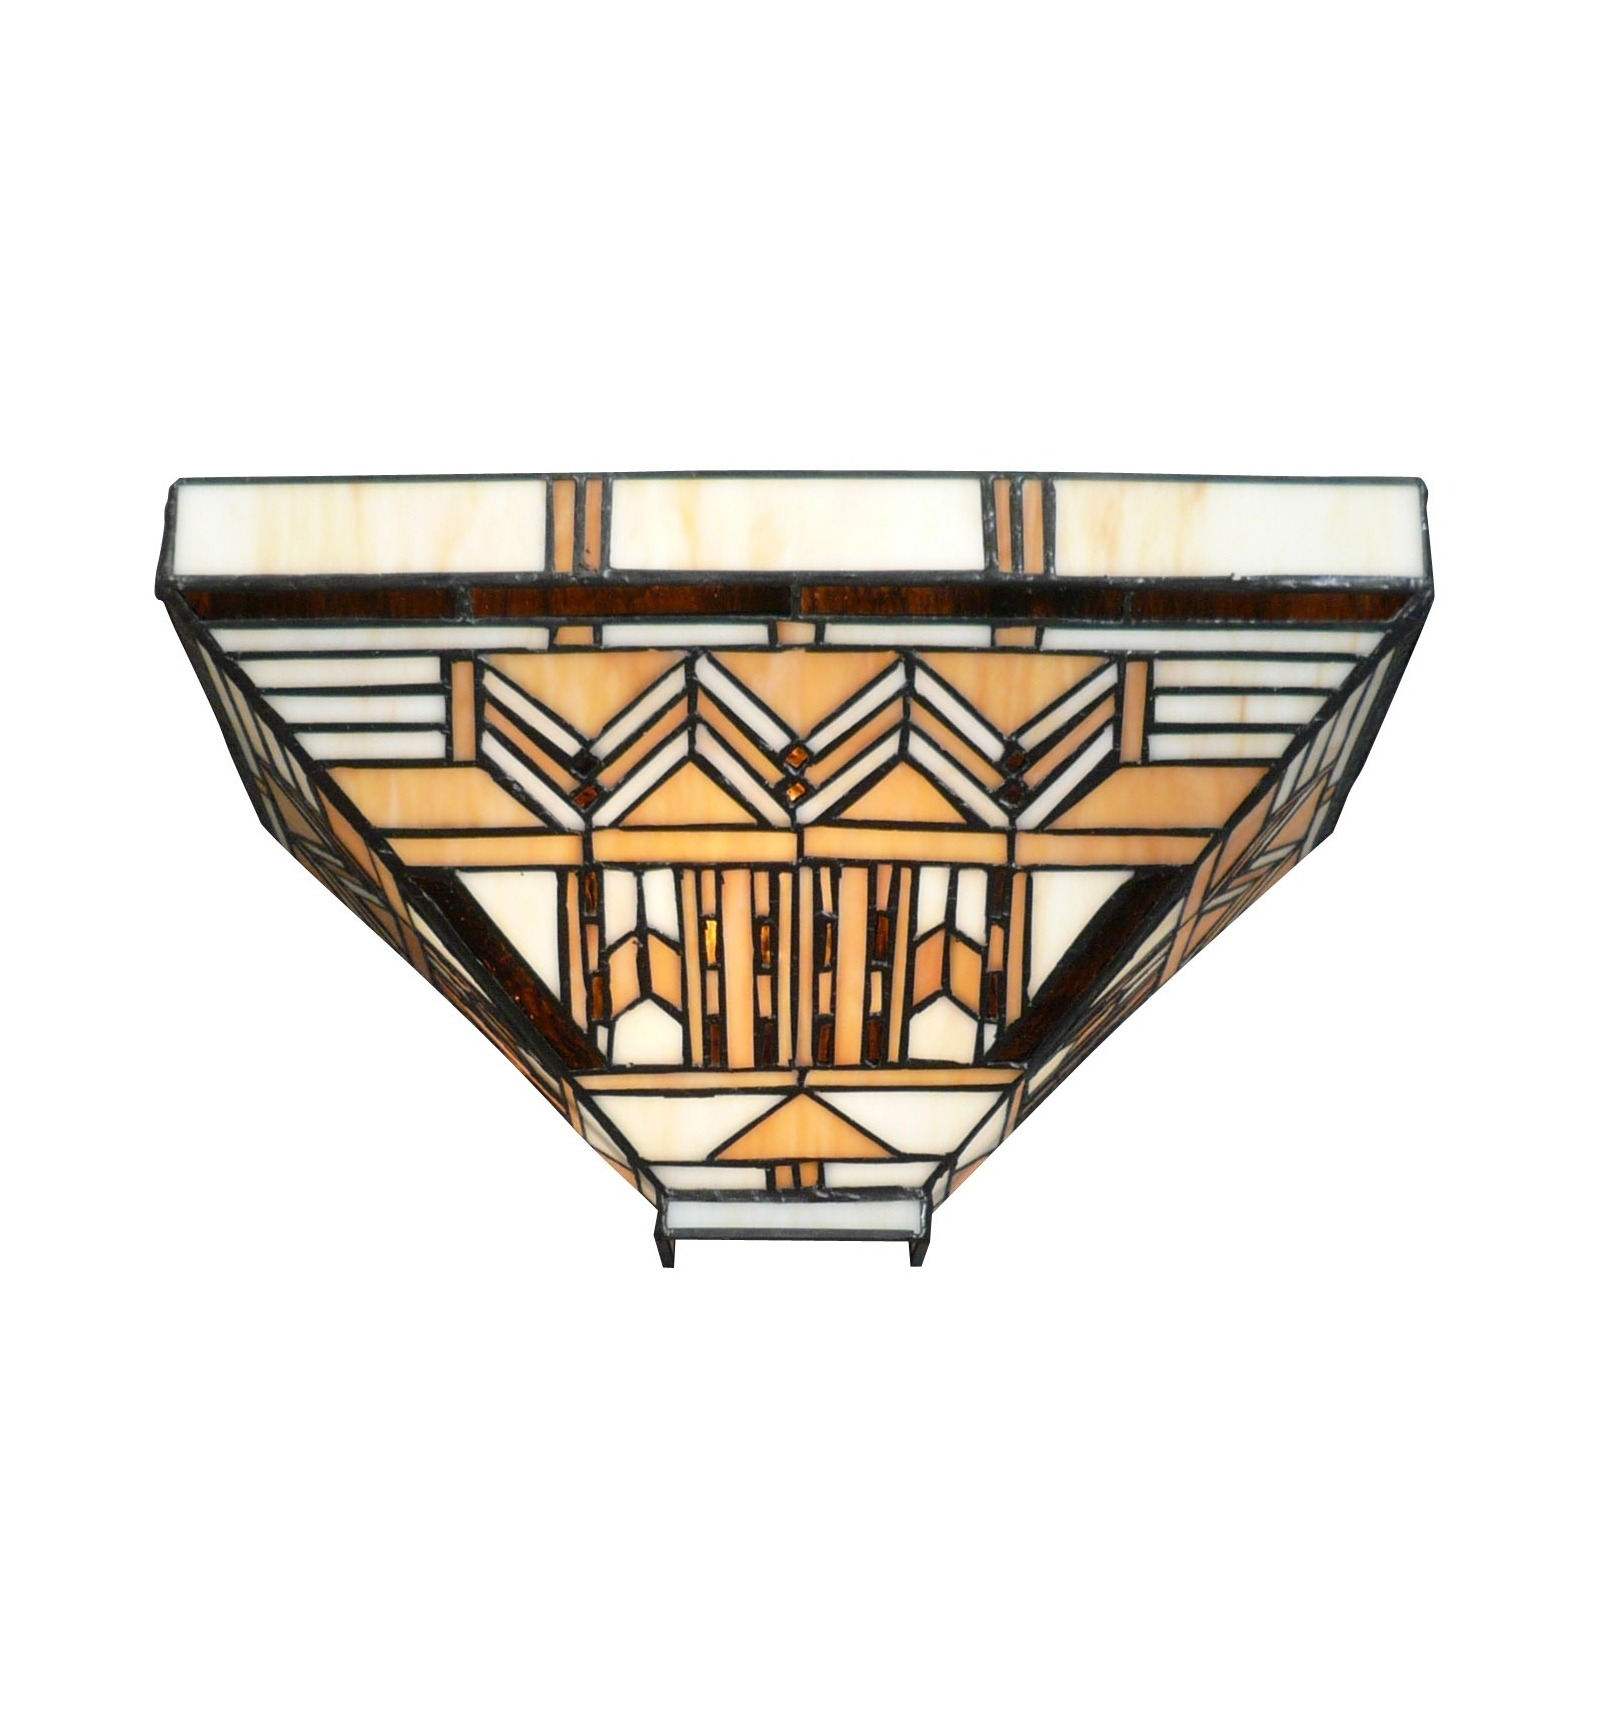 tiffany art deco wandlampe boston tiffany lampe. Black Bedroom Furniture Sets. Home Design Ideas